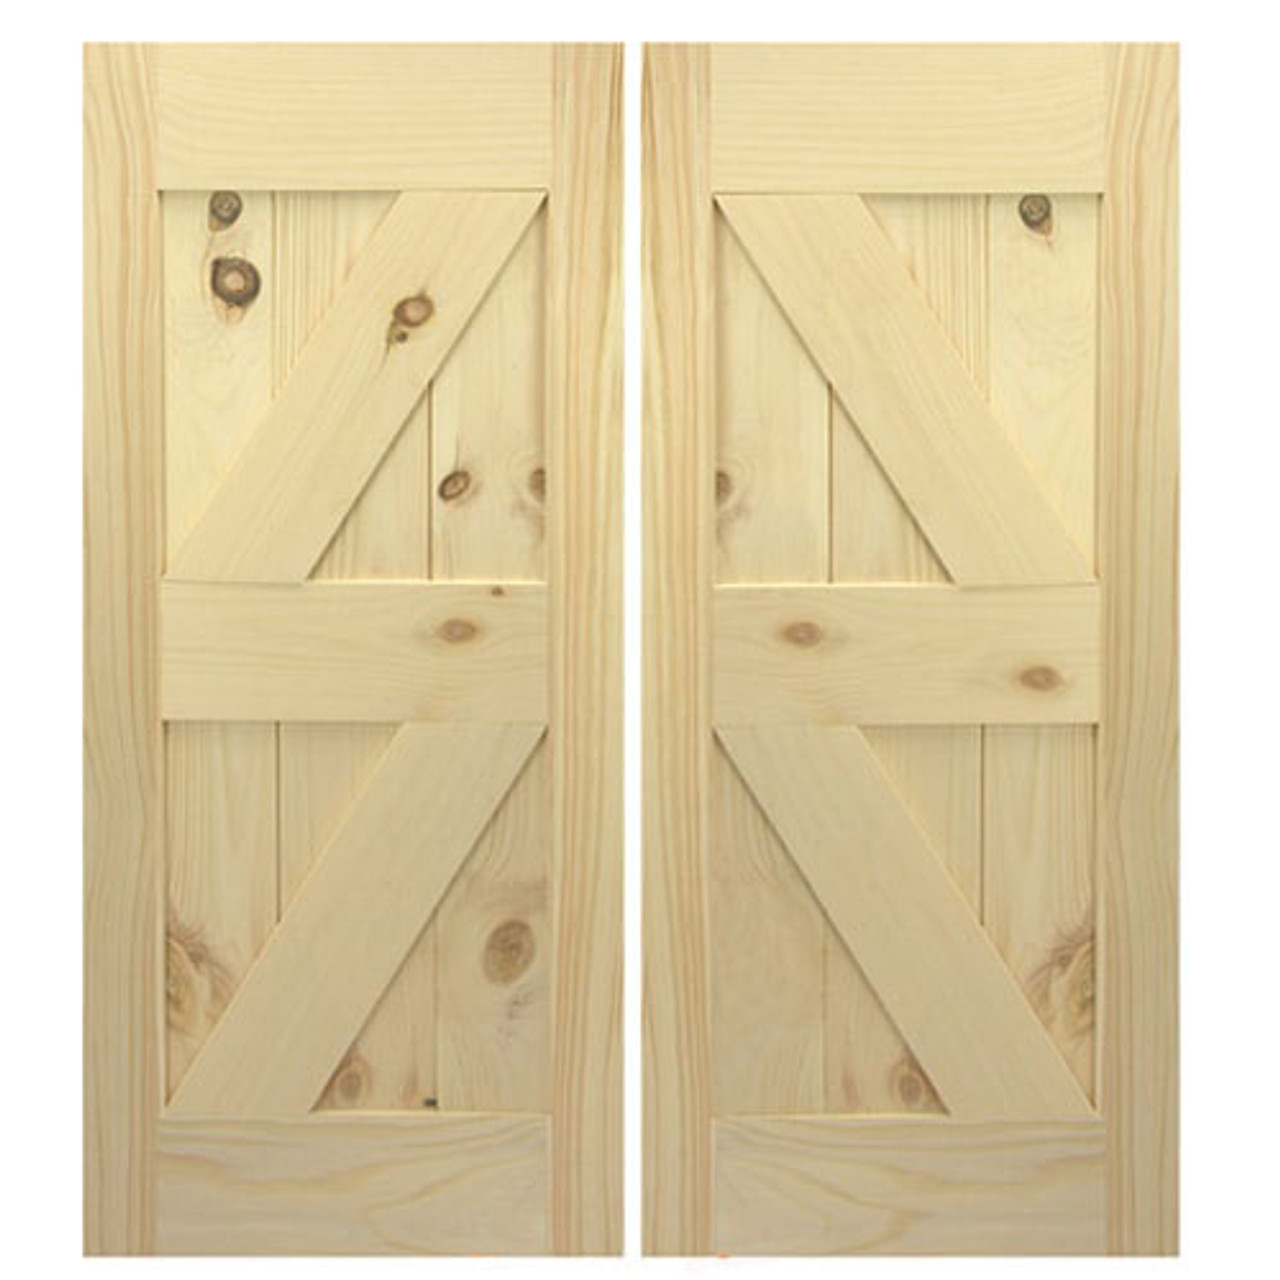 Double Interior Barn Style Doors Double Z Custom Barn Doors